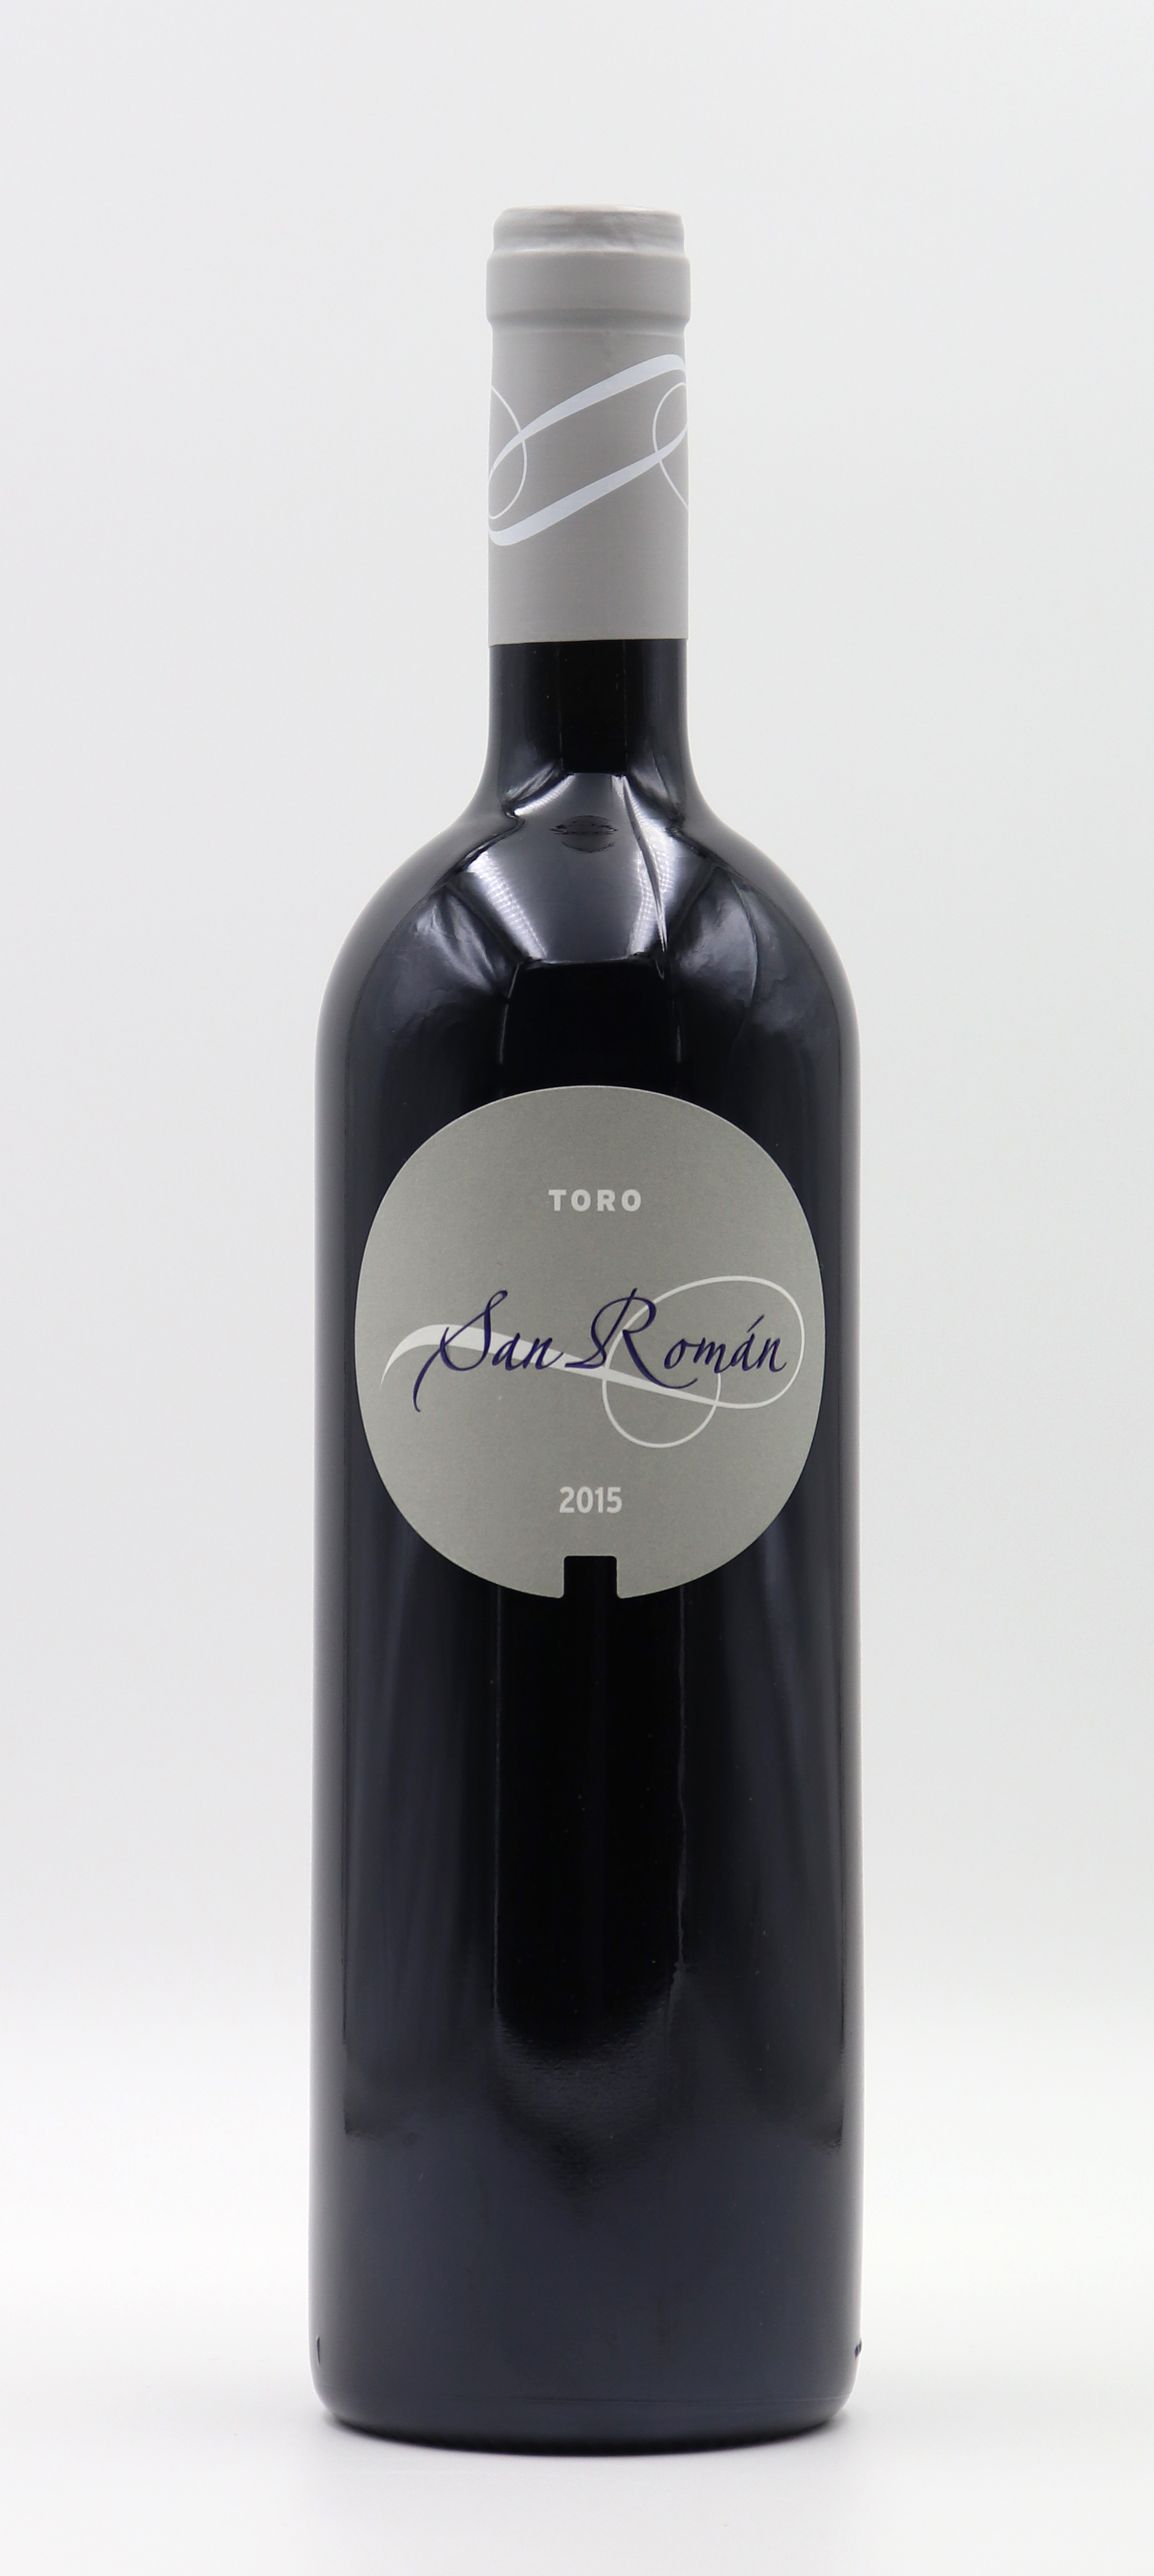 The 2015 Bodegas San Roman Toro (WWB, 94) is a magical wine that has incredible poise and richness from this warm vintage in Toro.